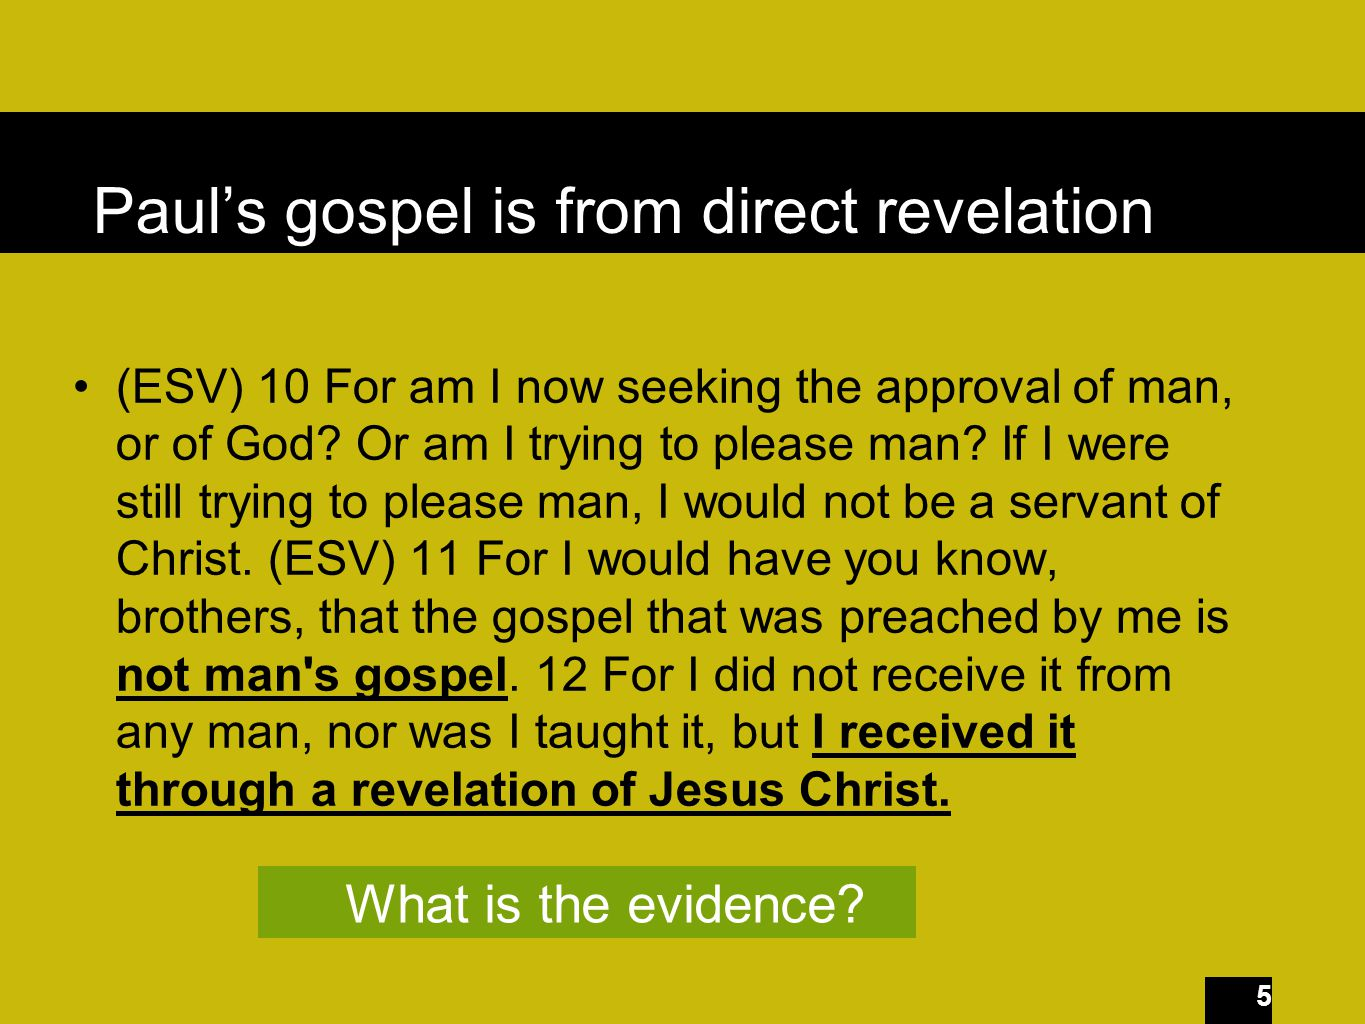 26 In do we see God at work in Pauls life before his conversion?